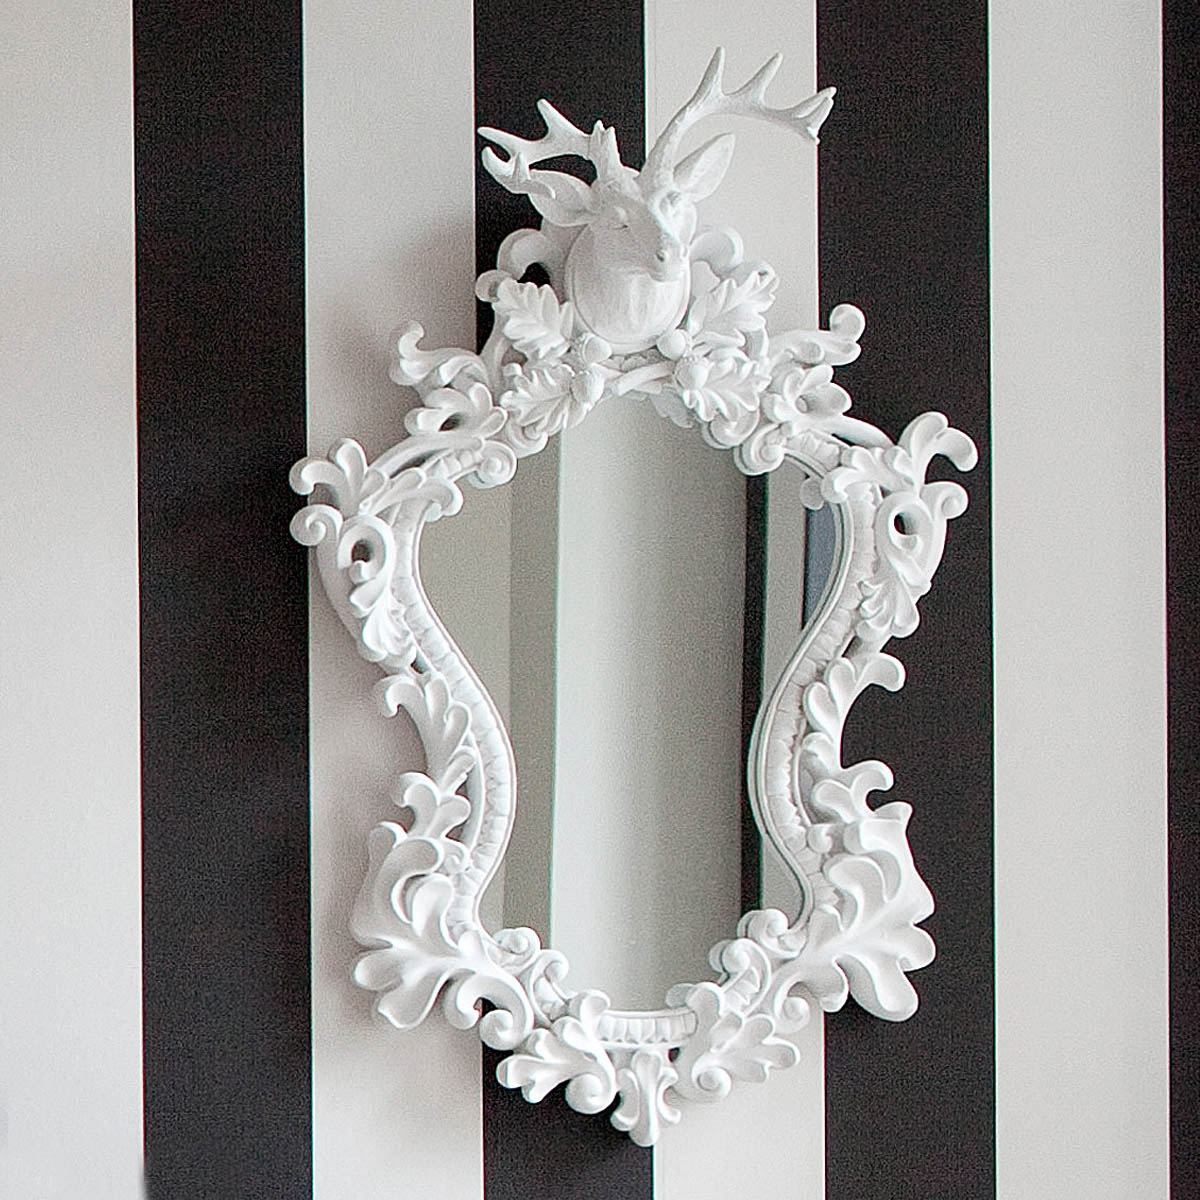 Large White Mirrors For Walls Mirror Design Ideas Within Pretty Mirrors For Walls (View 13 of 15)